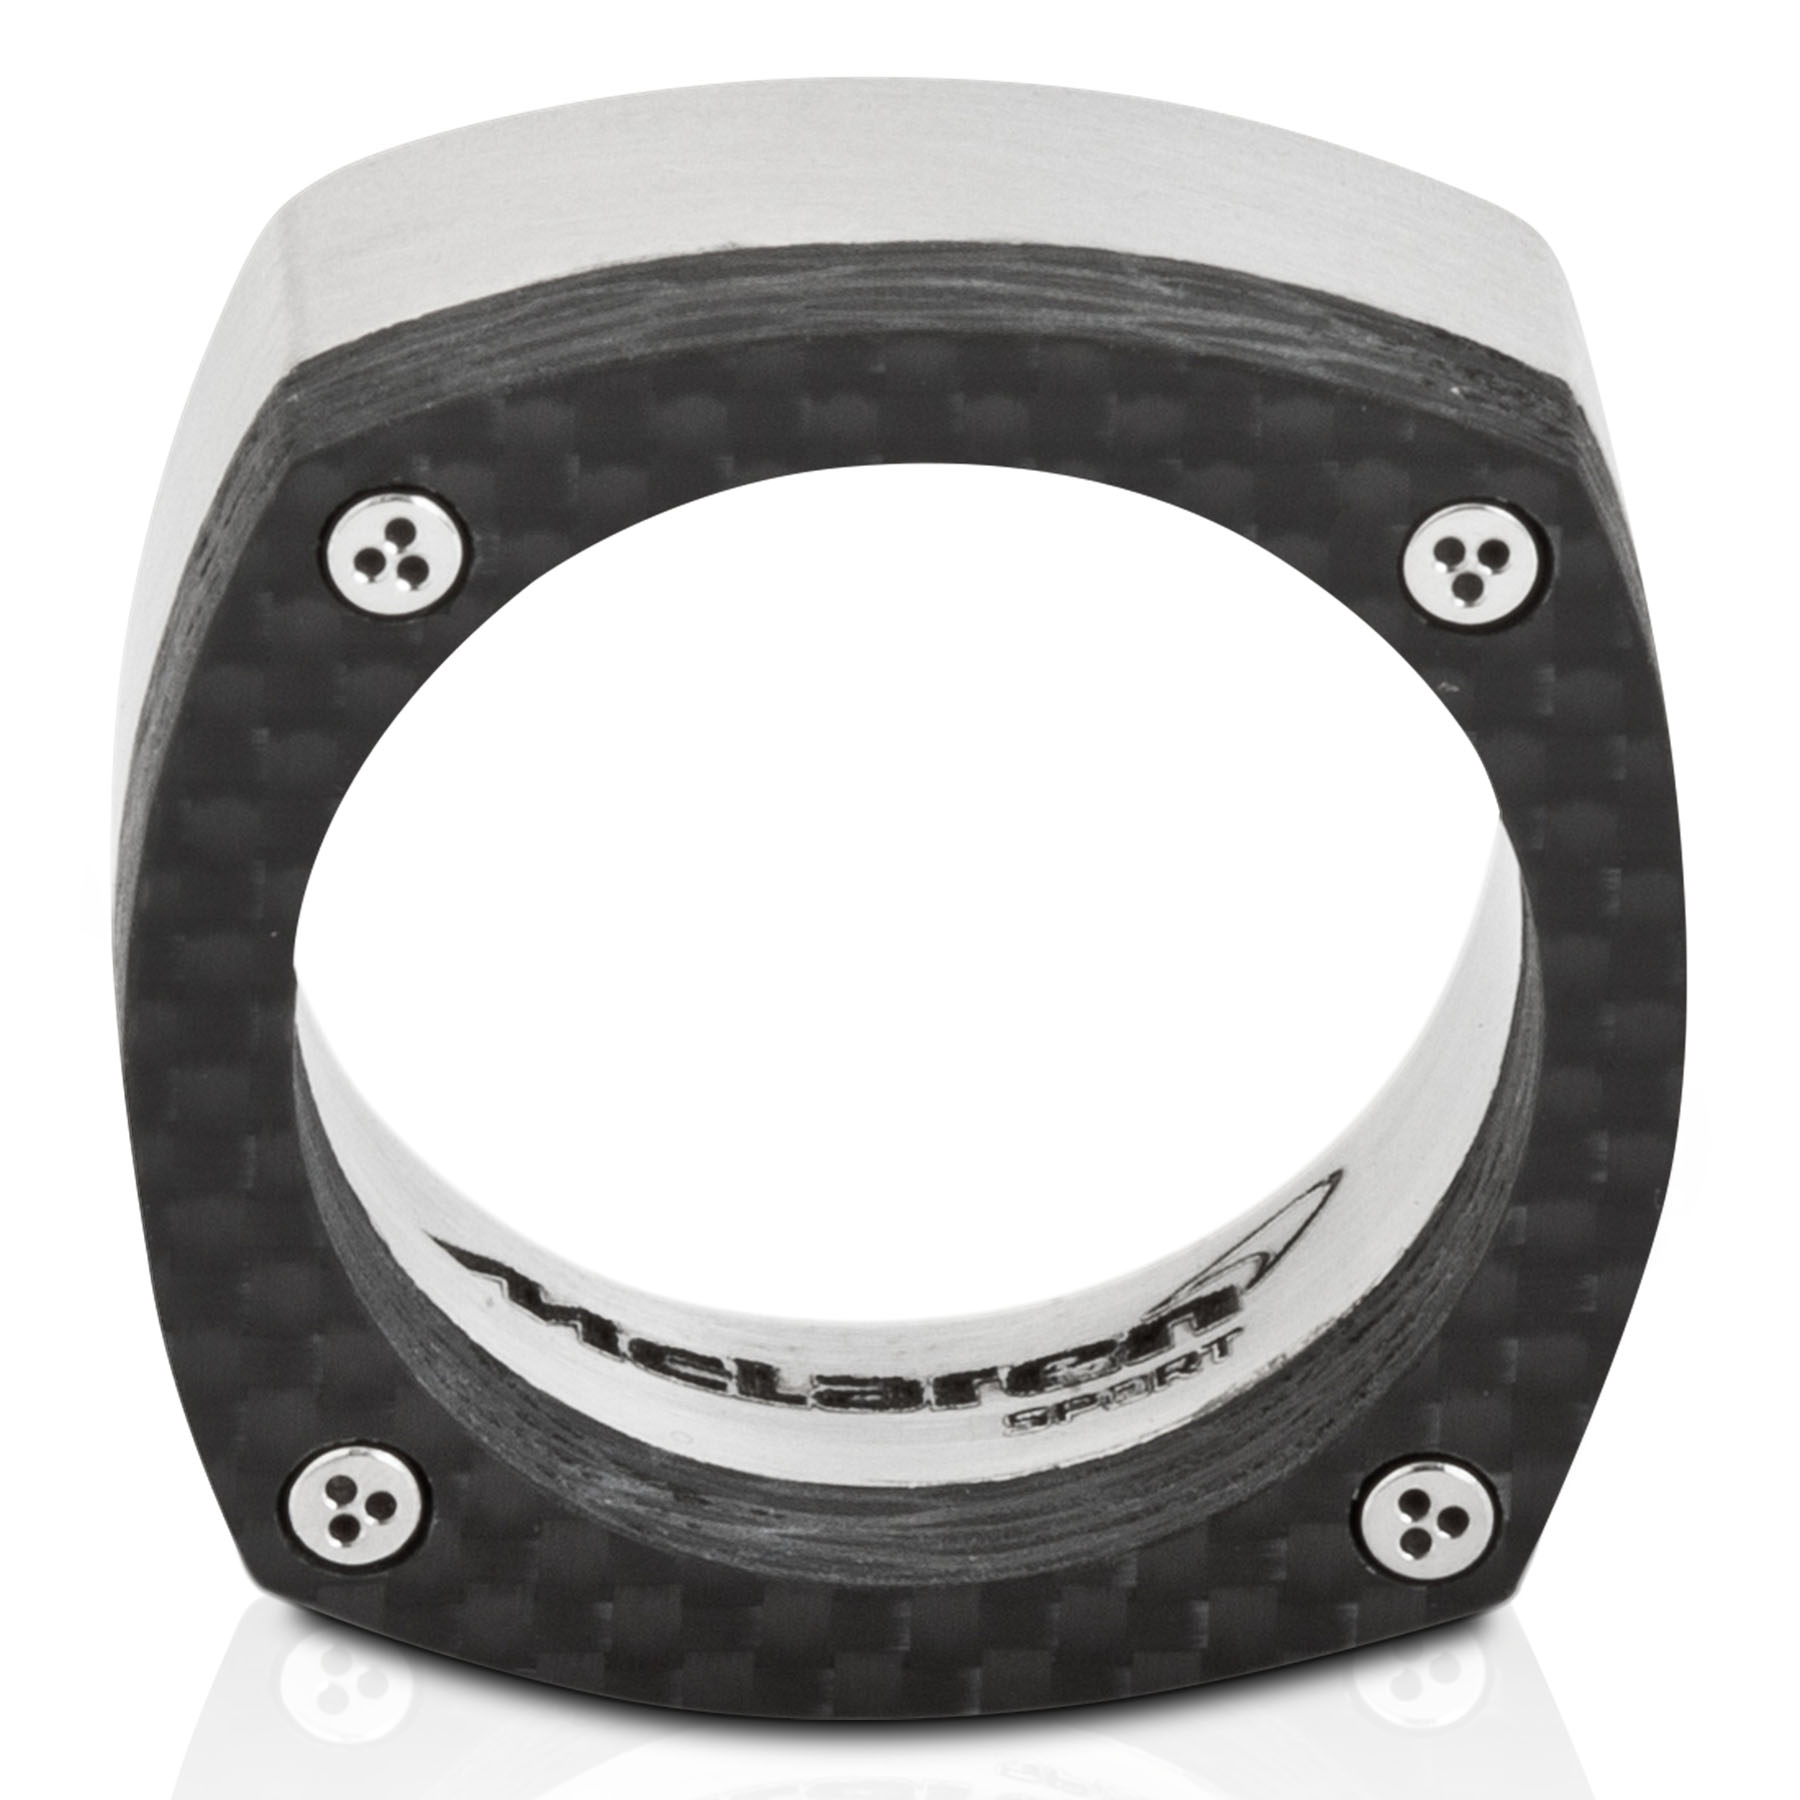 McLaren LINKS Engineered Ring